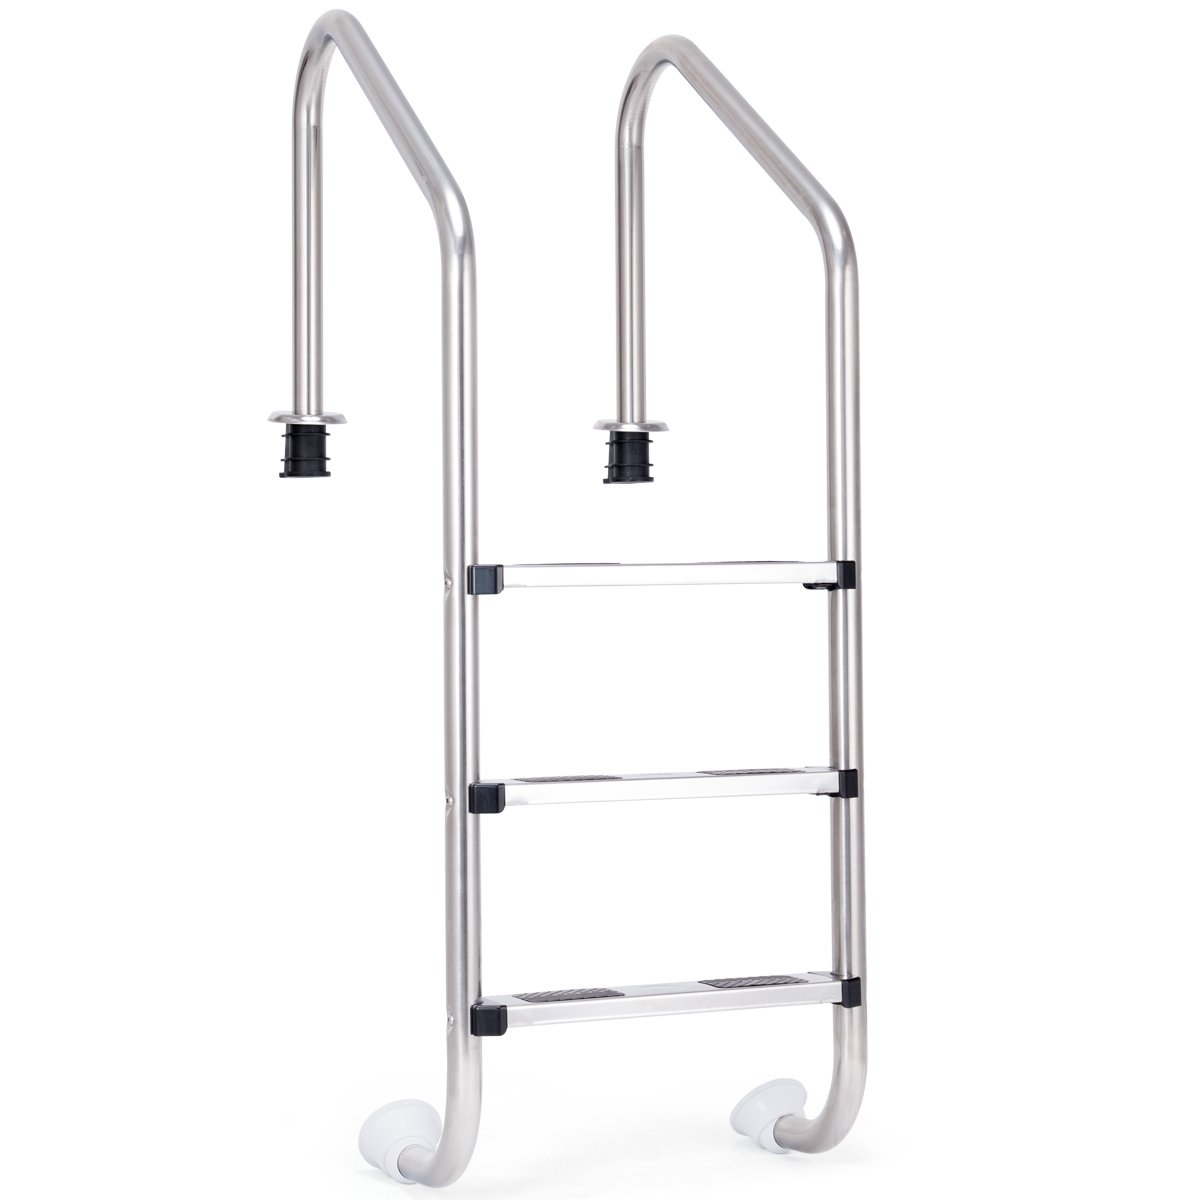 Goplus Swimming Pool Ladder for In Ground Pools Heavy Duty 3-Step Stainless Steel Pool Step Ladder with Easy Mount Legs, Weight Capability 330 lbs by Goplus